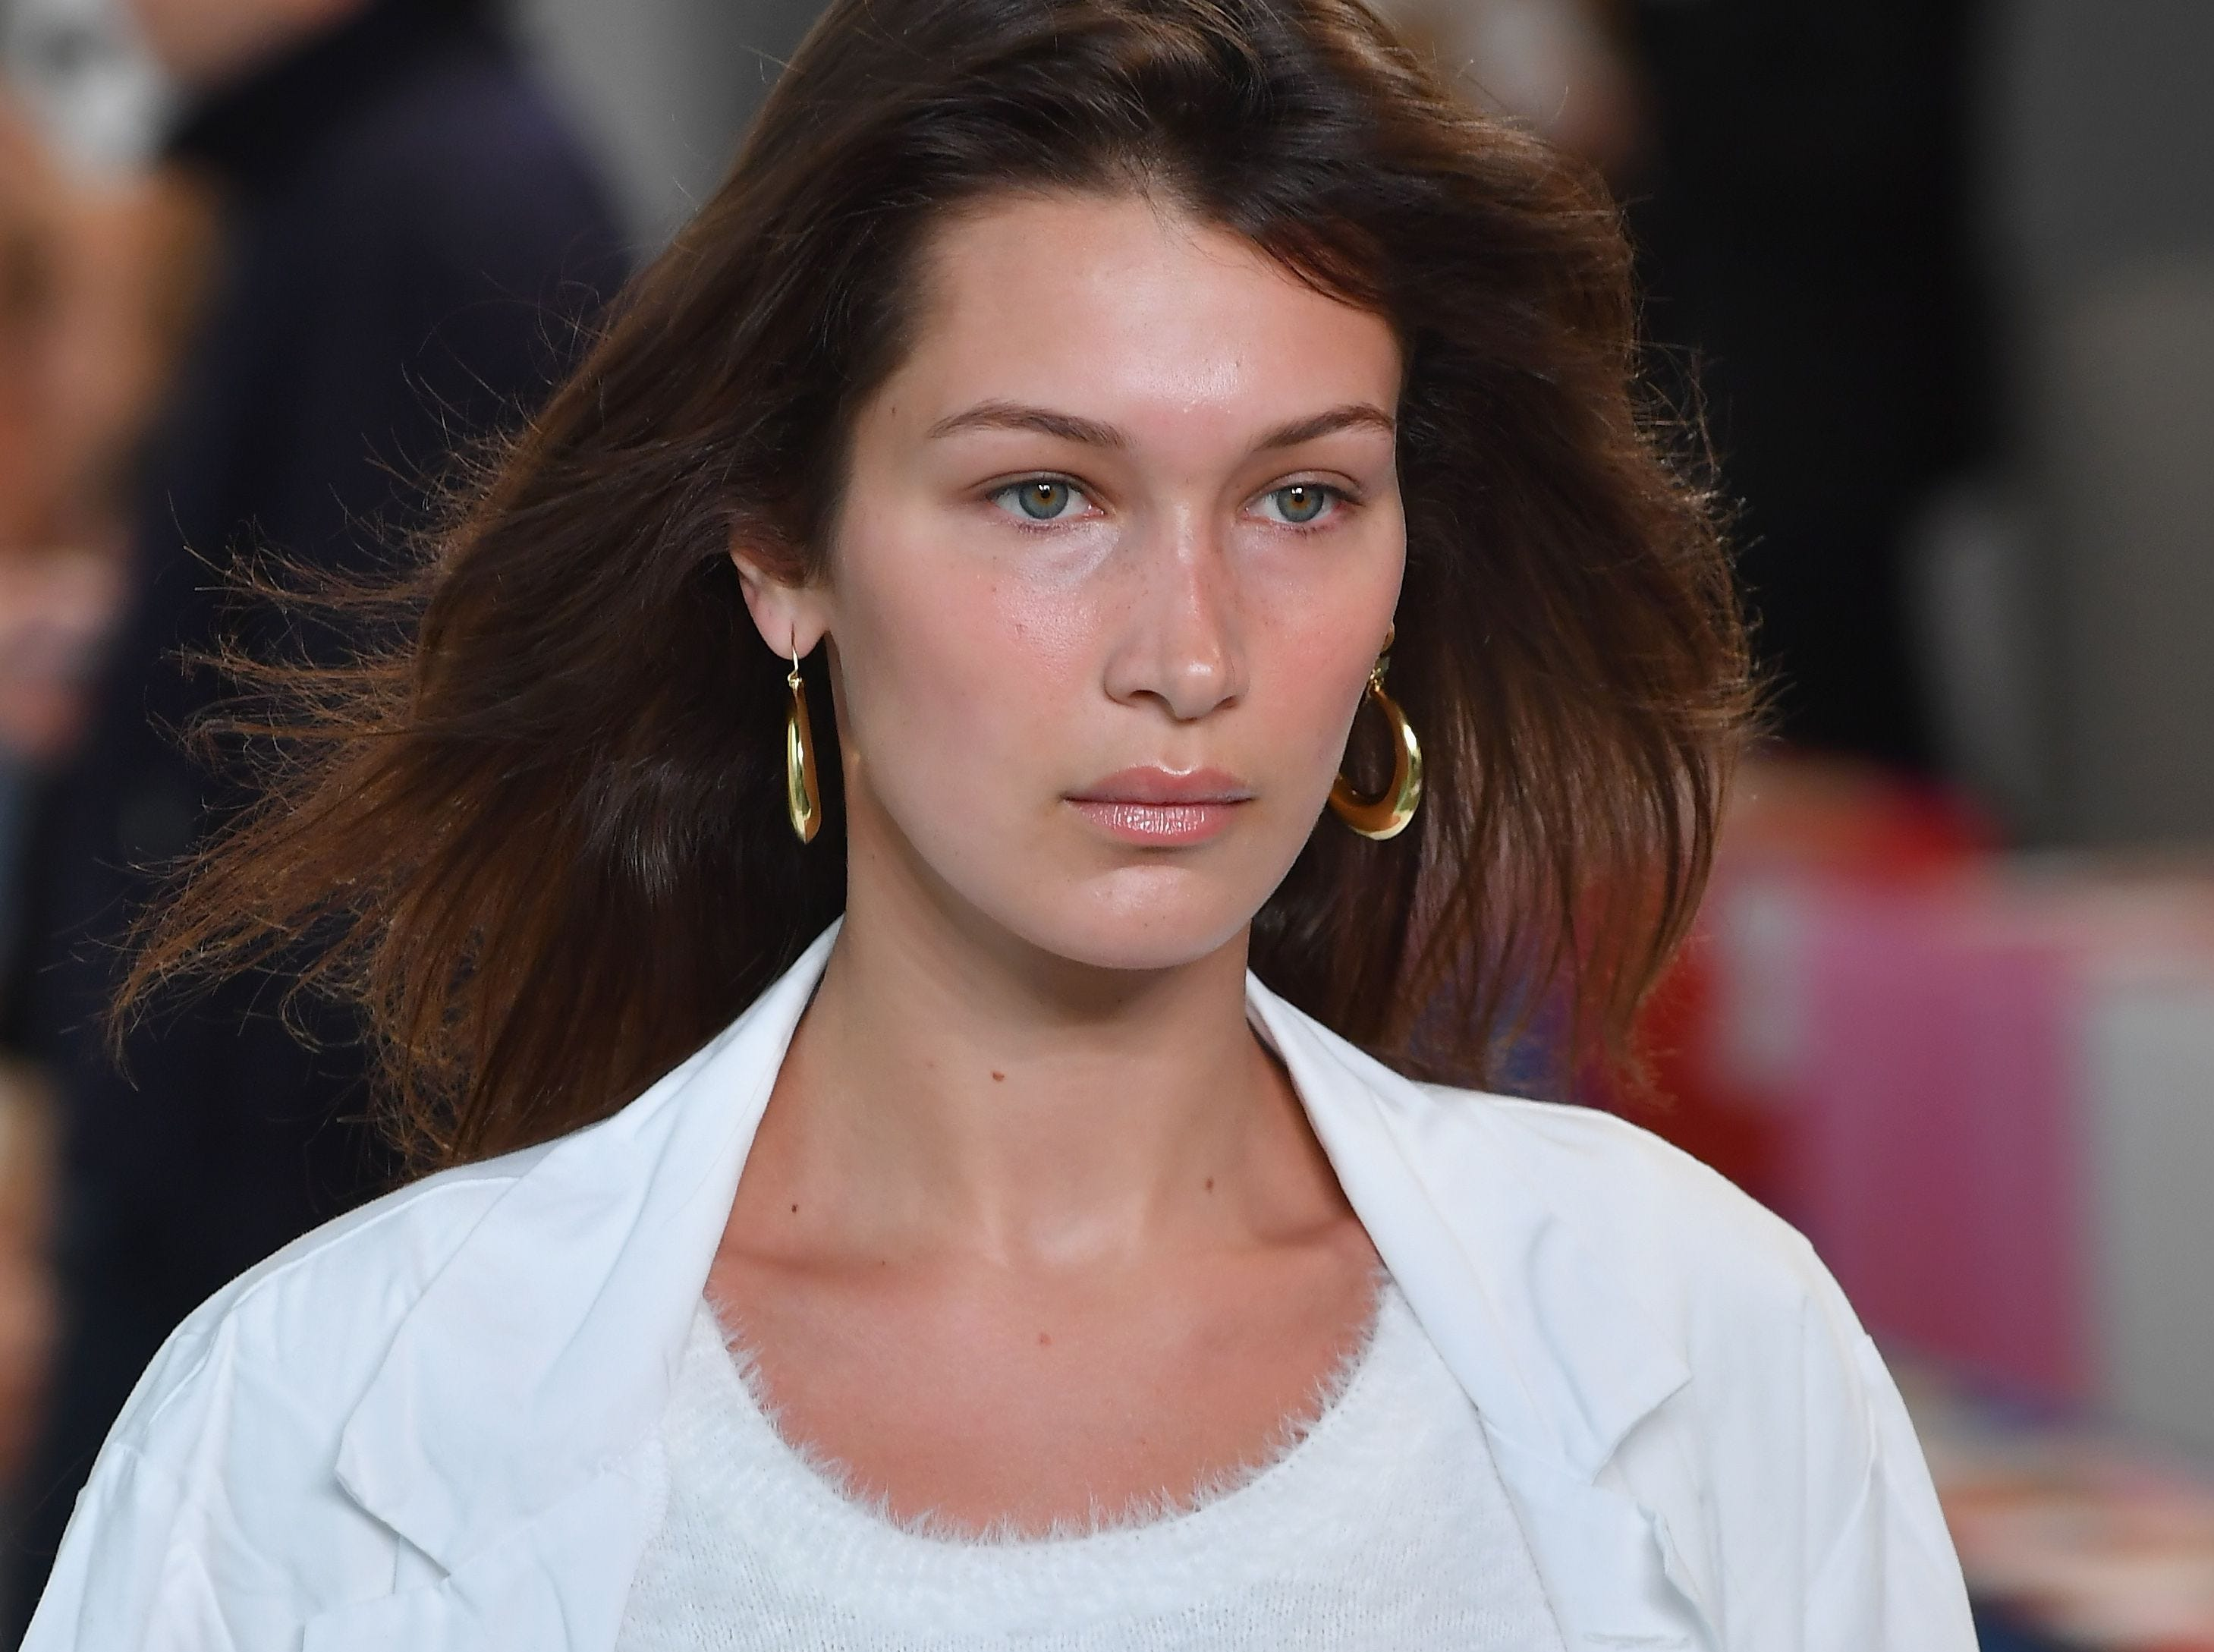 Model Bella Hadid prepares backstage at the Michael Kors Collection Spring 2019 Runway Show at Pier 17 on September 12, 2018 in New York City. (Photo by Angela Weiss / AFP)ANGELA WEISS/AFP/Getty Images ORIG FILE ID: AFP_1919K0